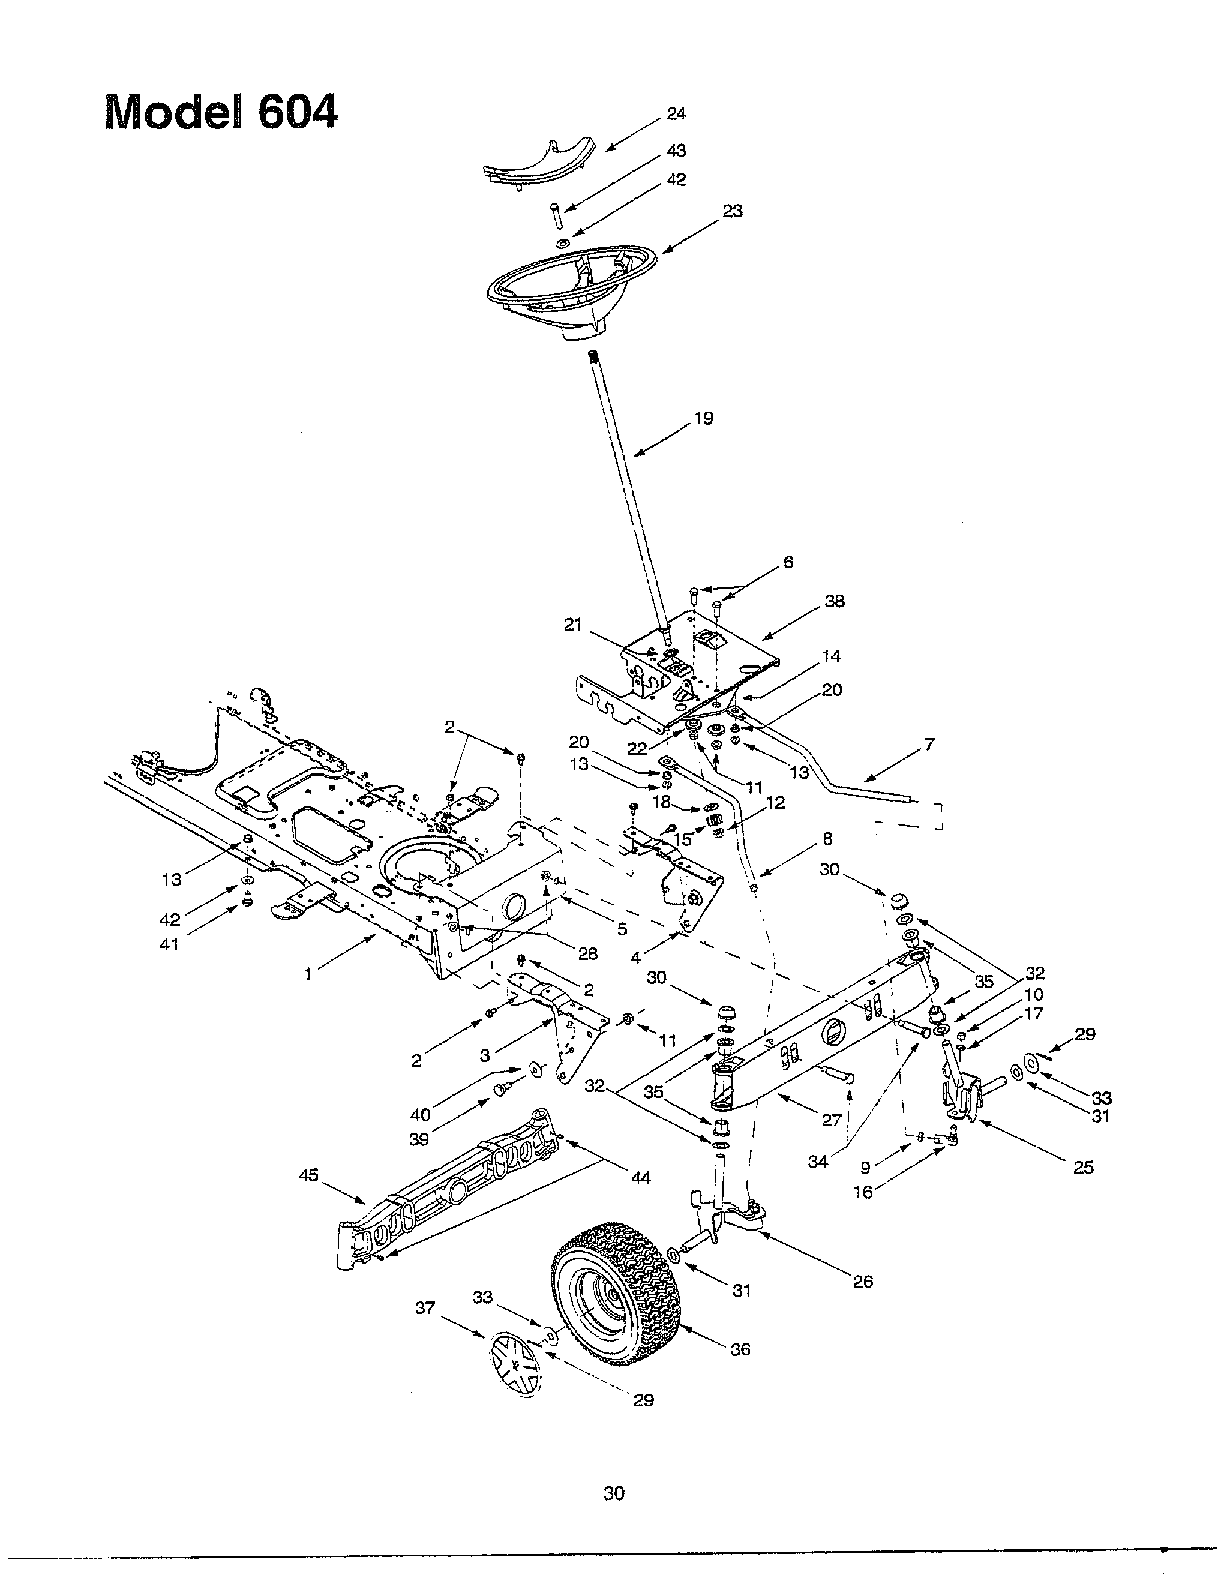 hight resolution of looking for mtd model 604 front engine lawn tractor repairmtd 604 steering assembly diagram